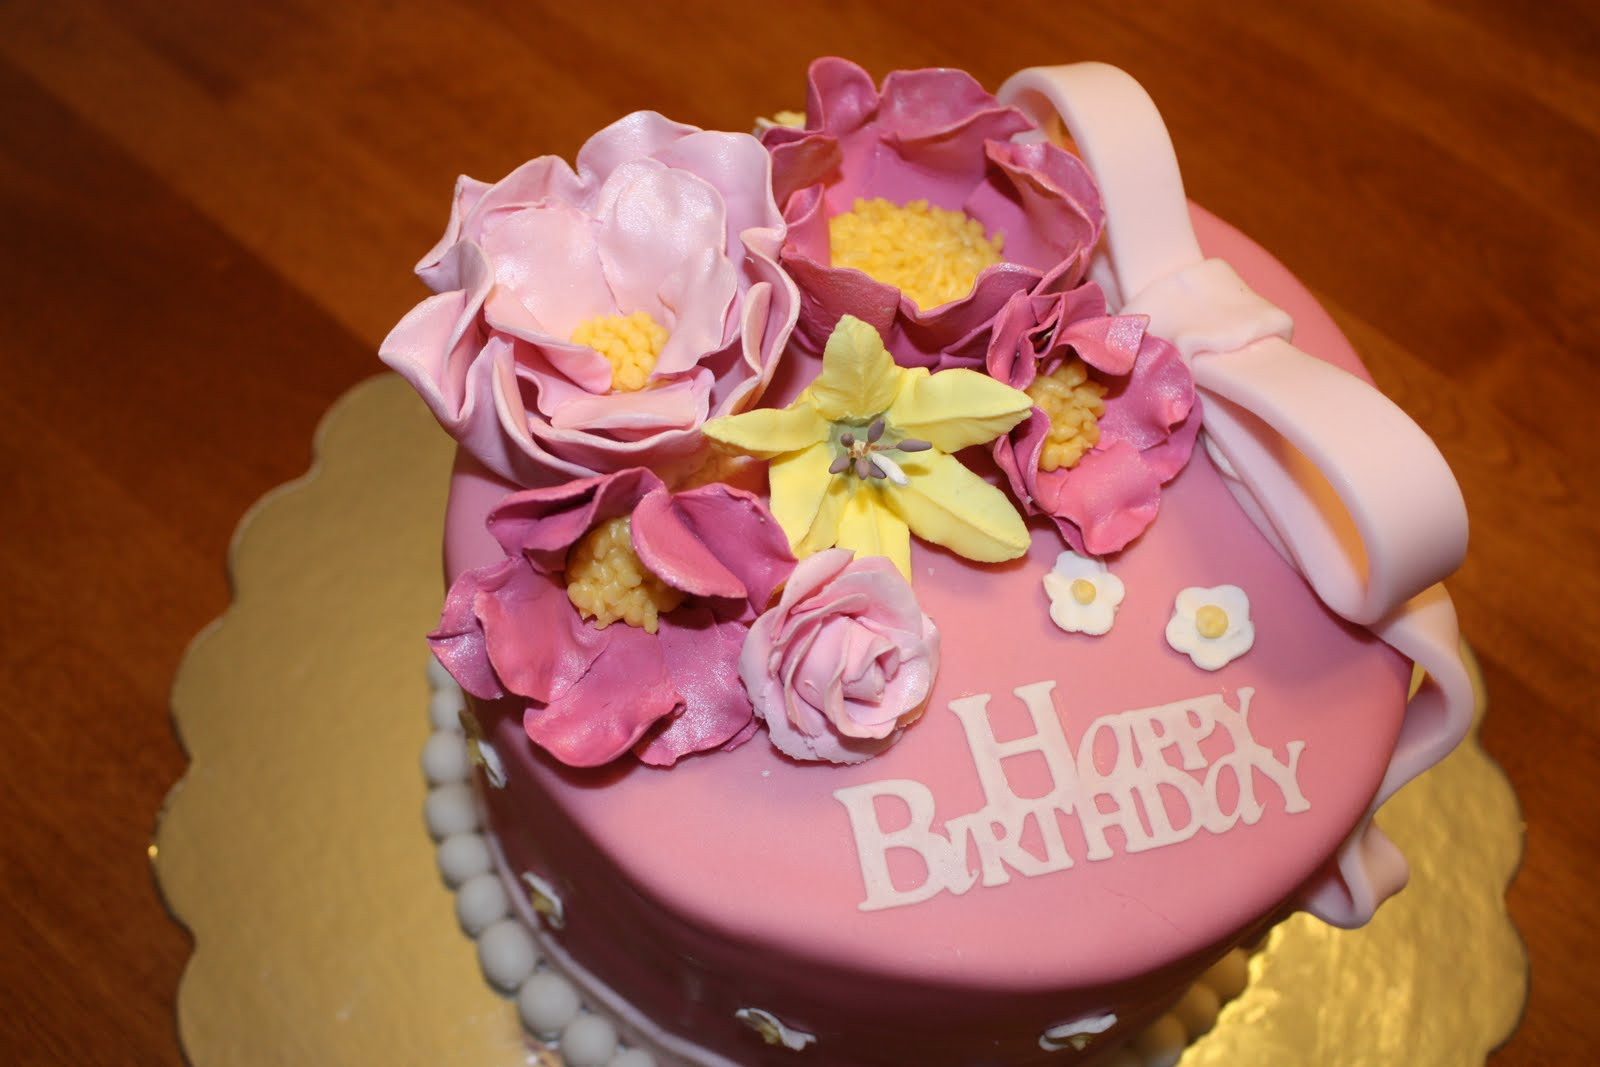 Happy Birthday Cake And Flower For The Special Person ENTERTAINMENT AND LOVE IS LIFE